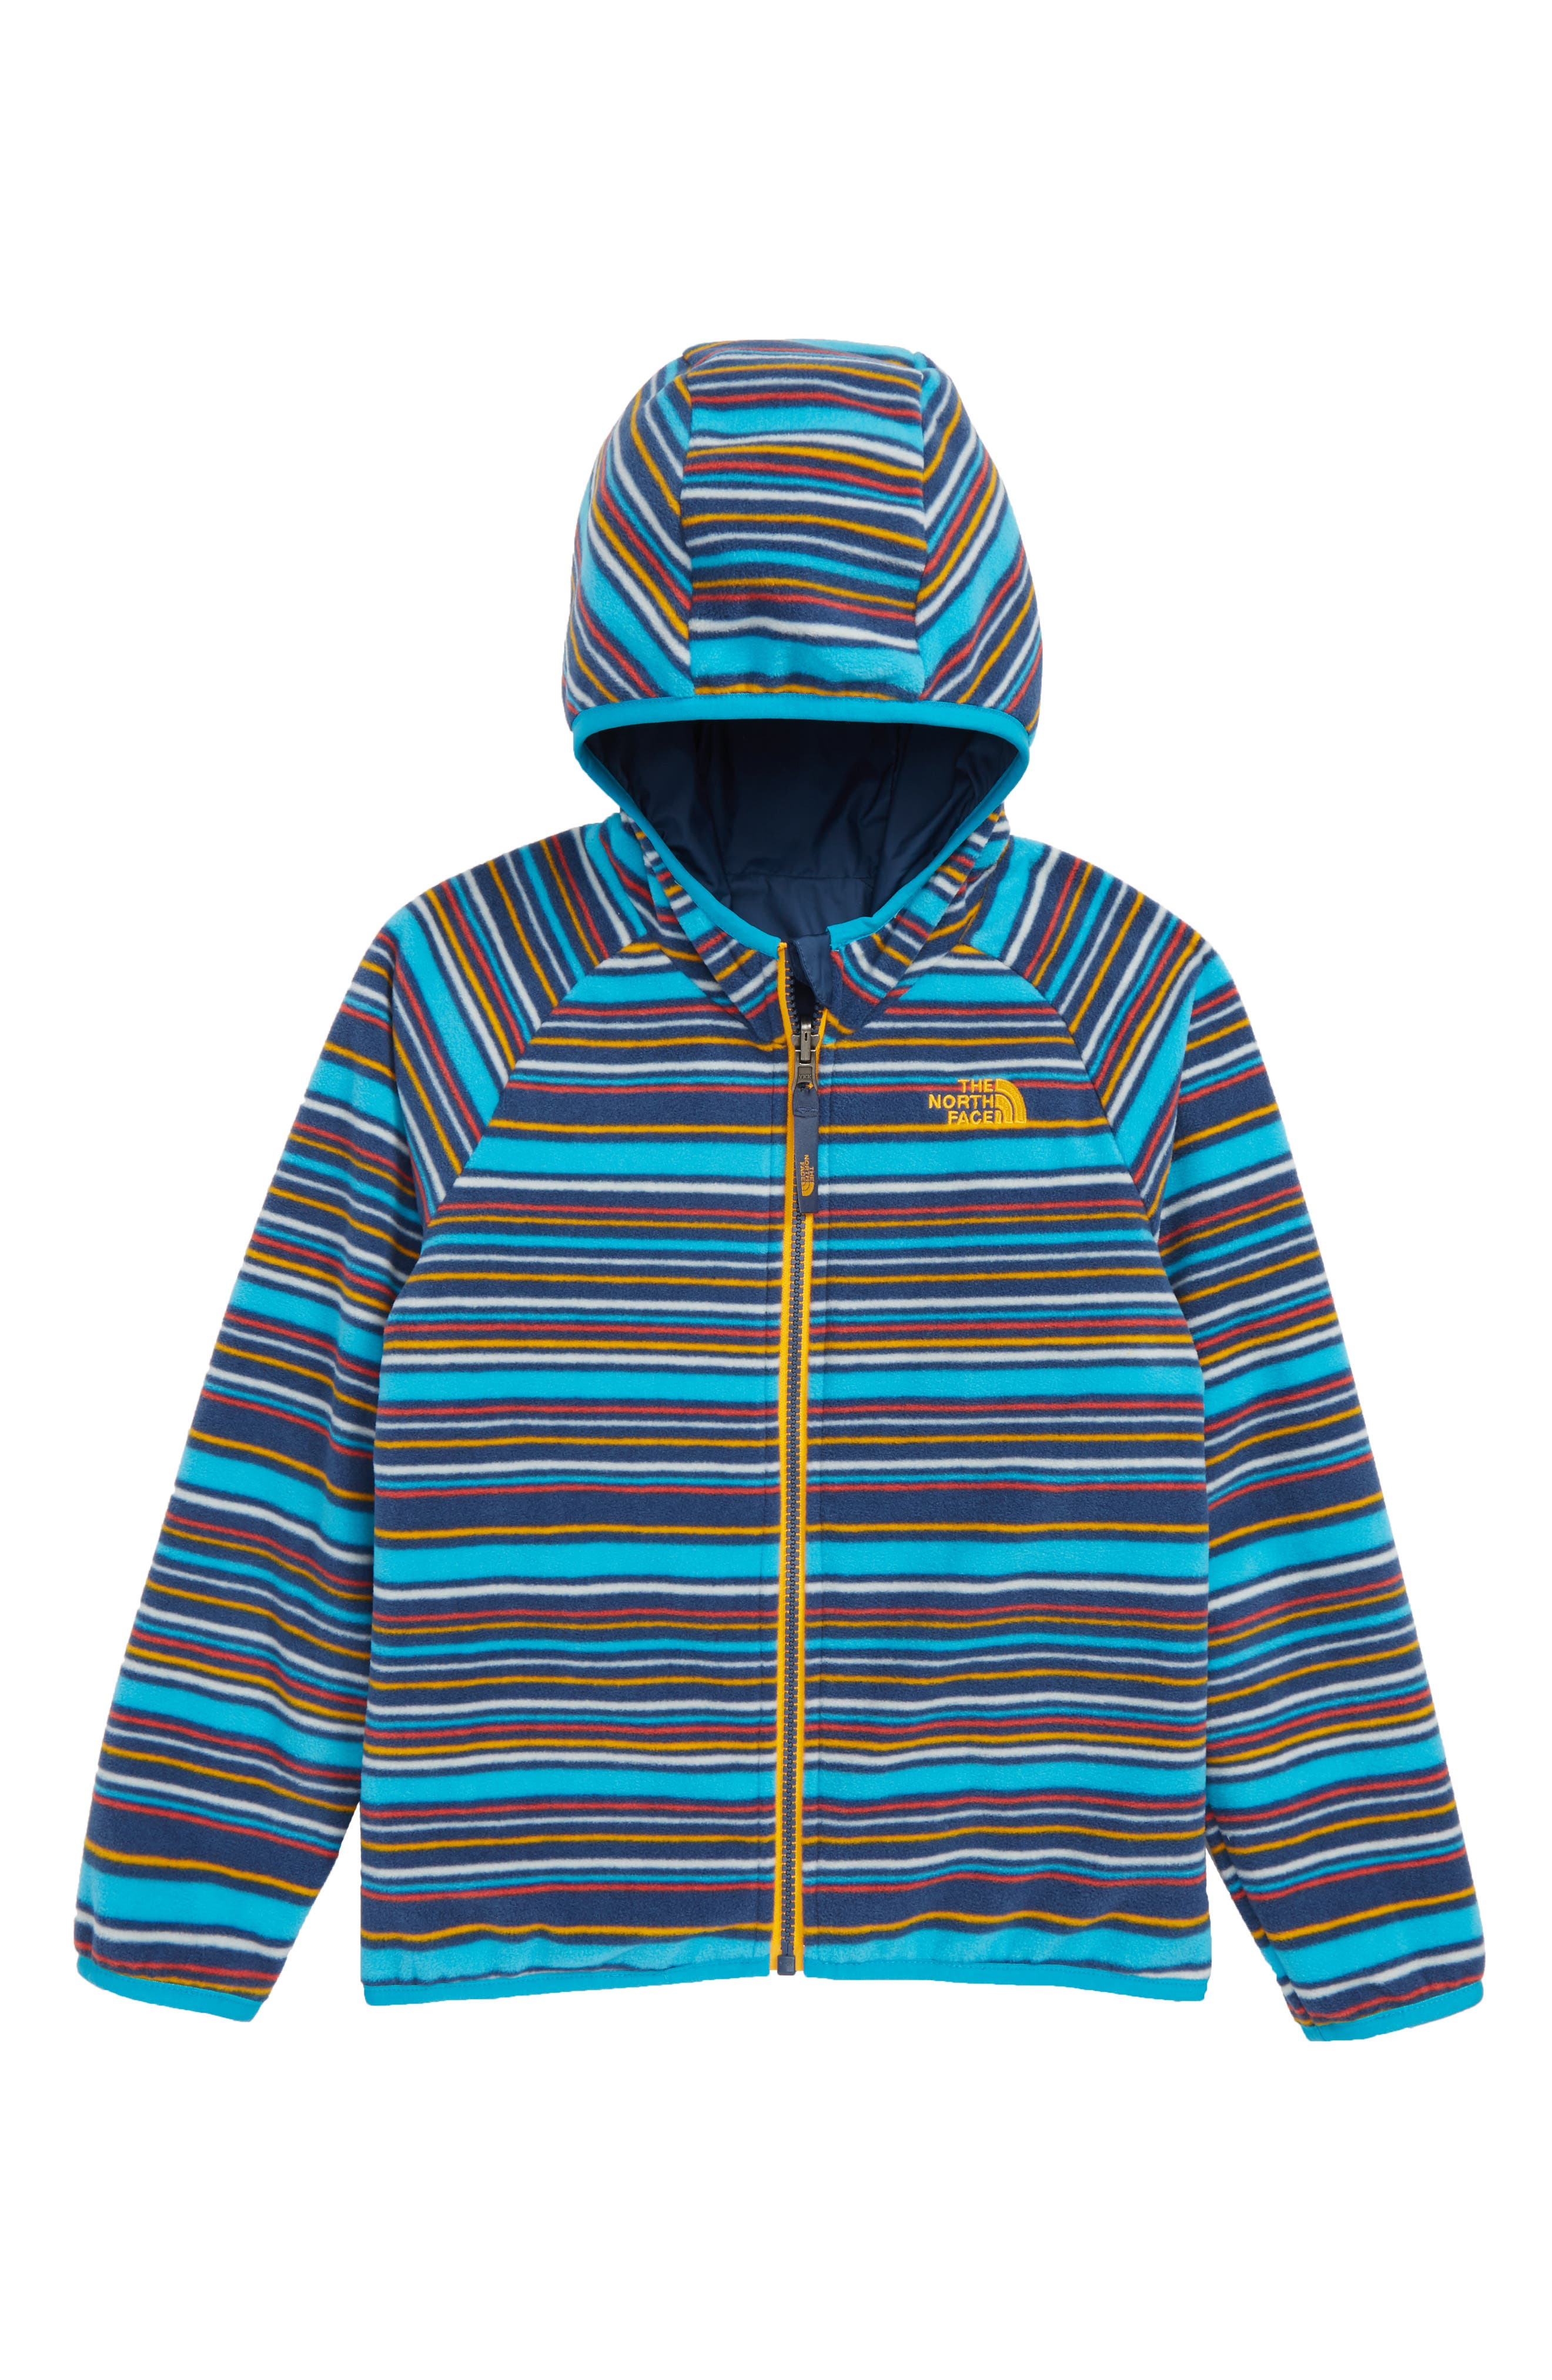 THE NORTH FACE, Breezeway Reversible Water Repellent Jacket, Alternate thumbnail 2, color, SHADY BLUE